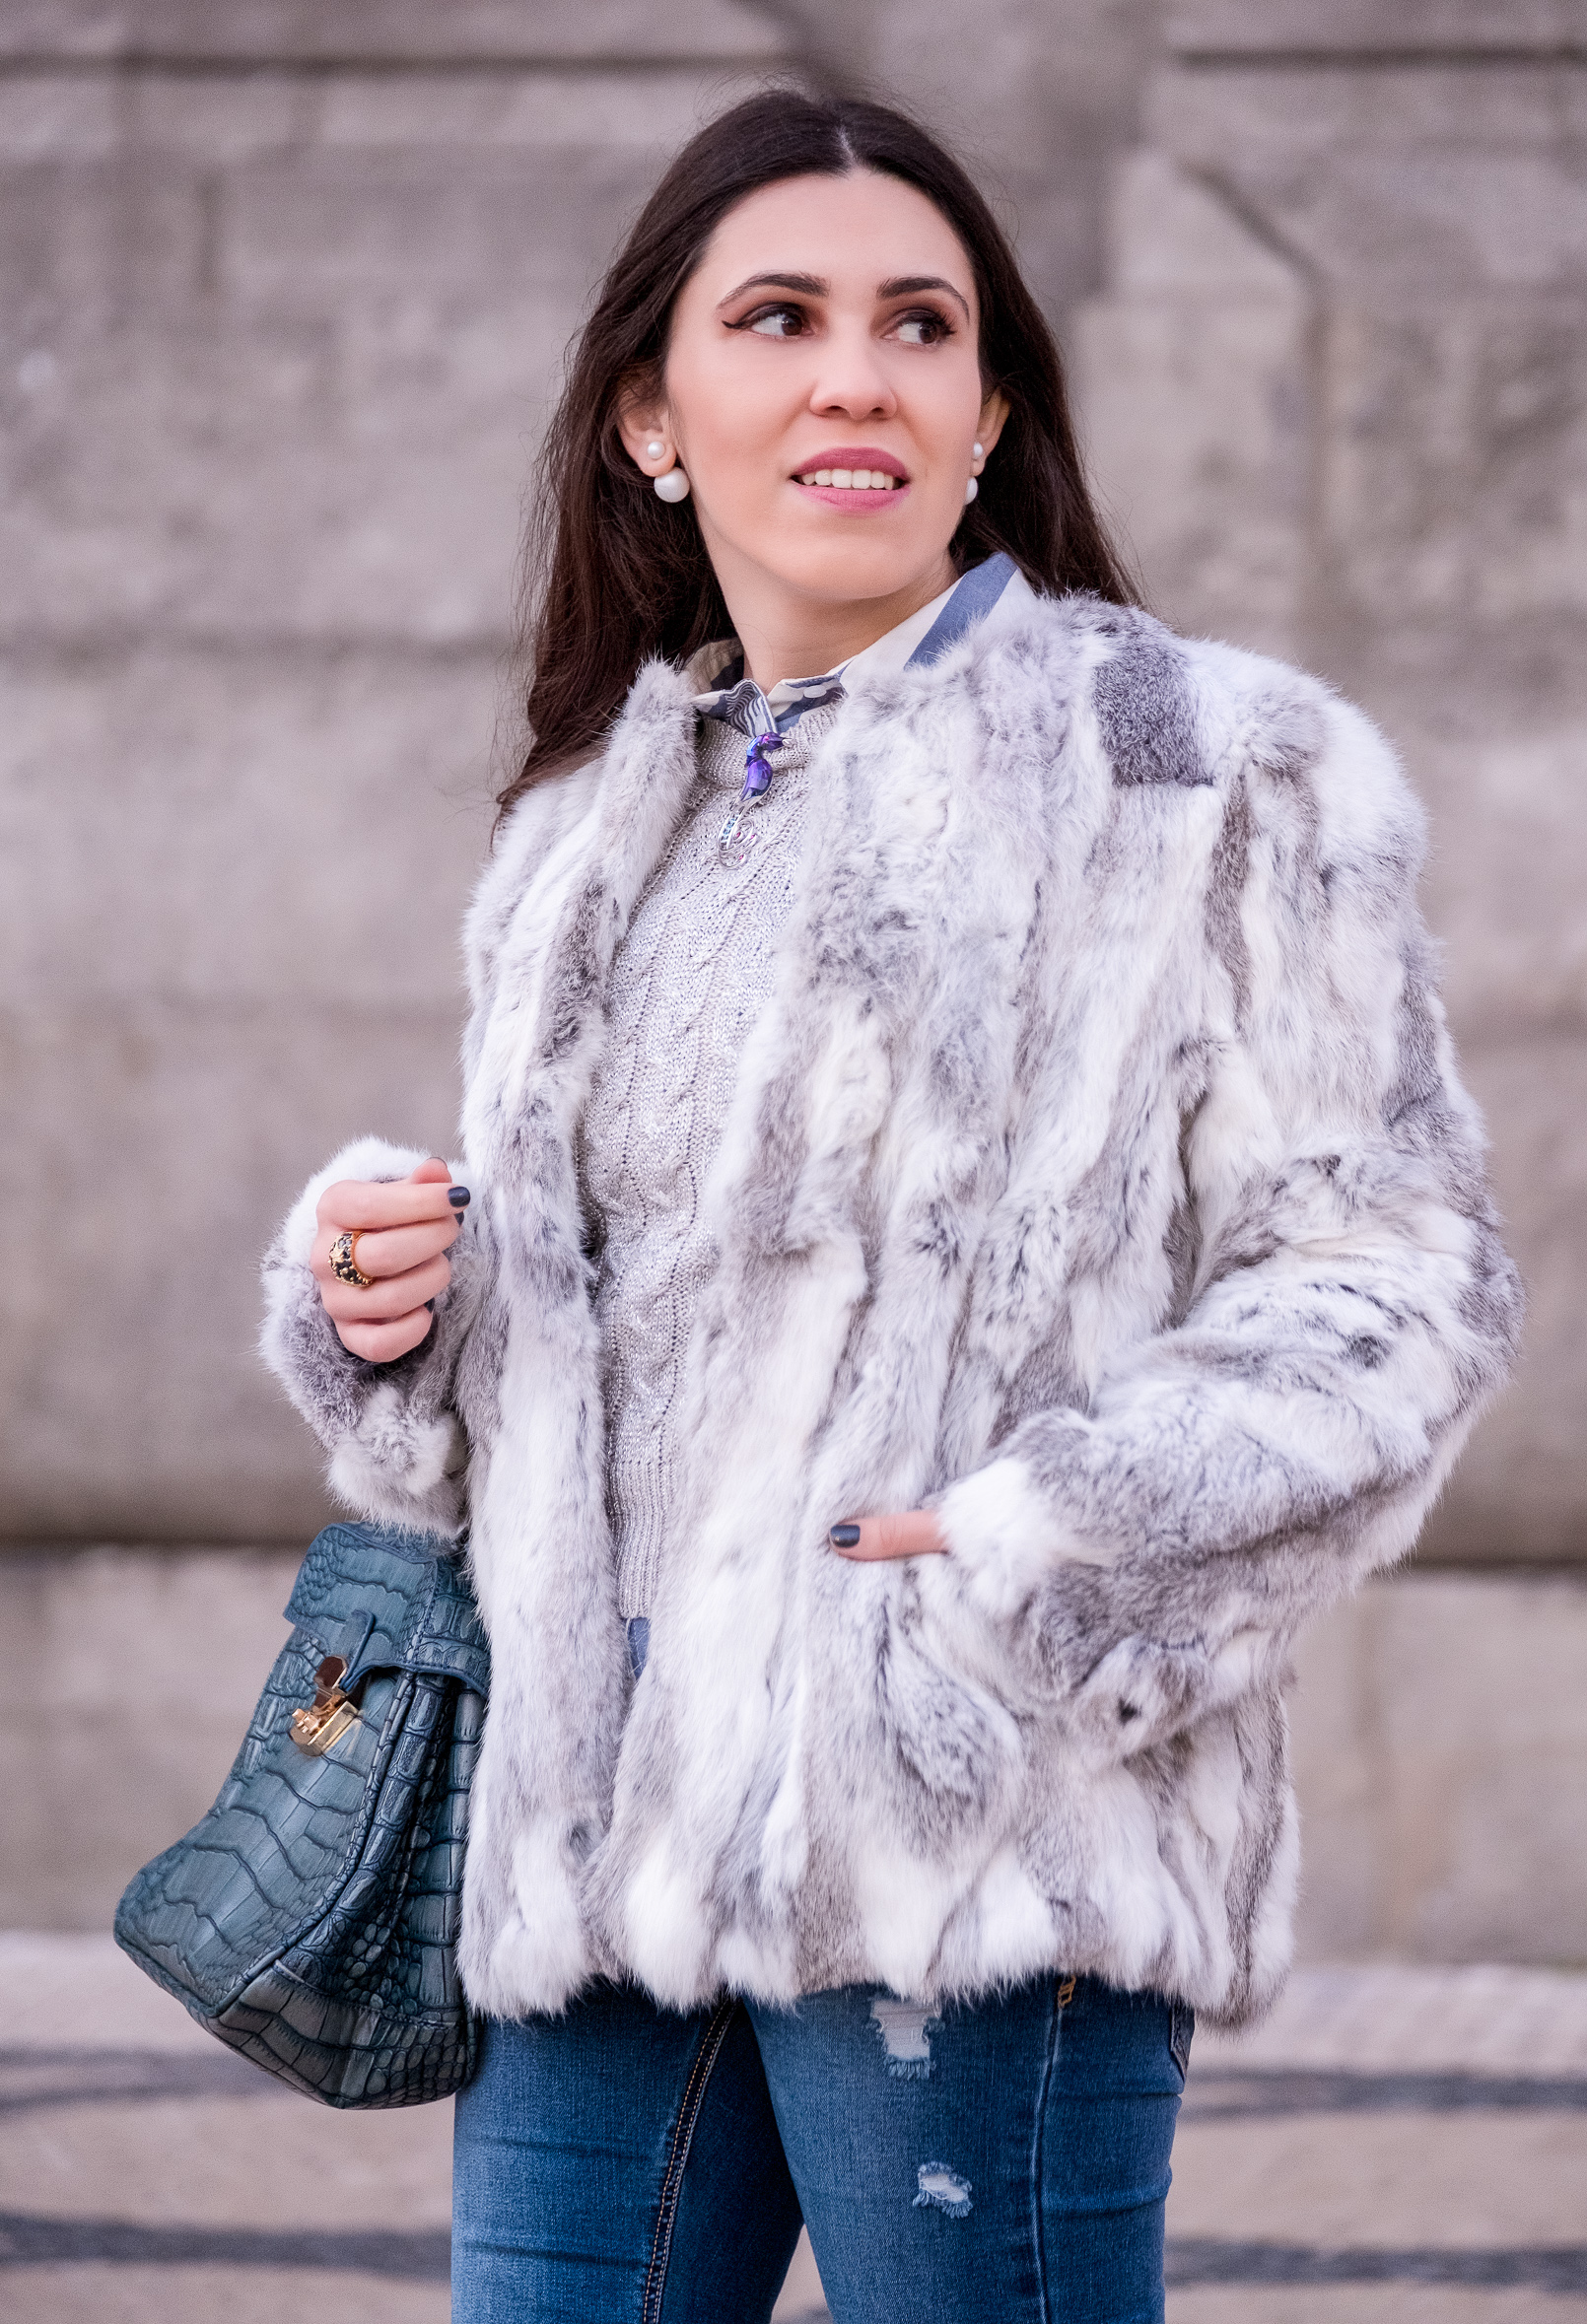 Le Fashionaire fur white gray sfera coat silver cable knit mango stripes light blue white new look shirt stradivarius jeans 1121 EN fur white gray sfera coat silver cable knit mango stripes light blue white new look shirt stradivarius jeans 1121 EN